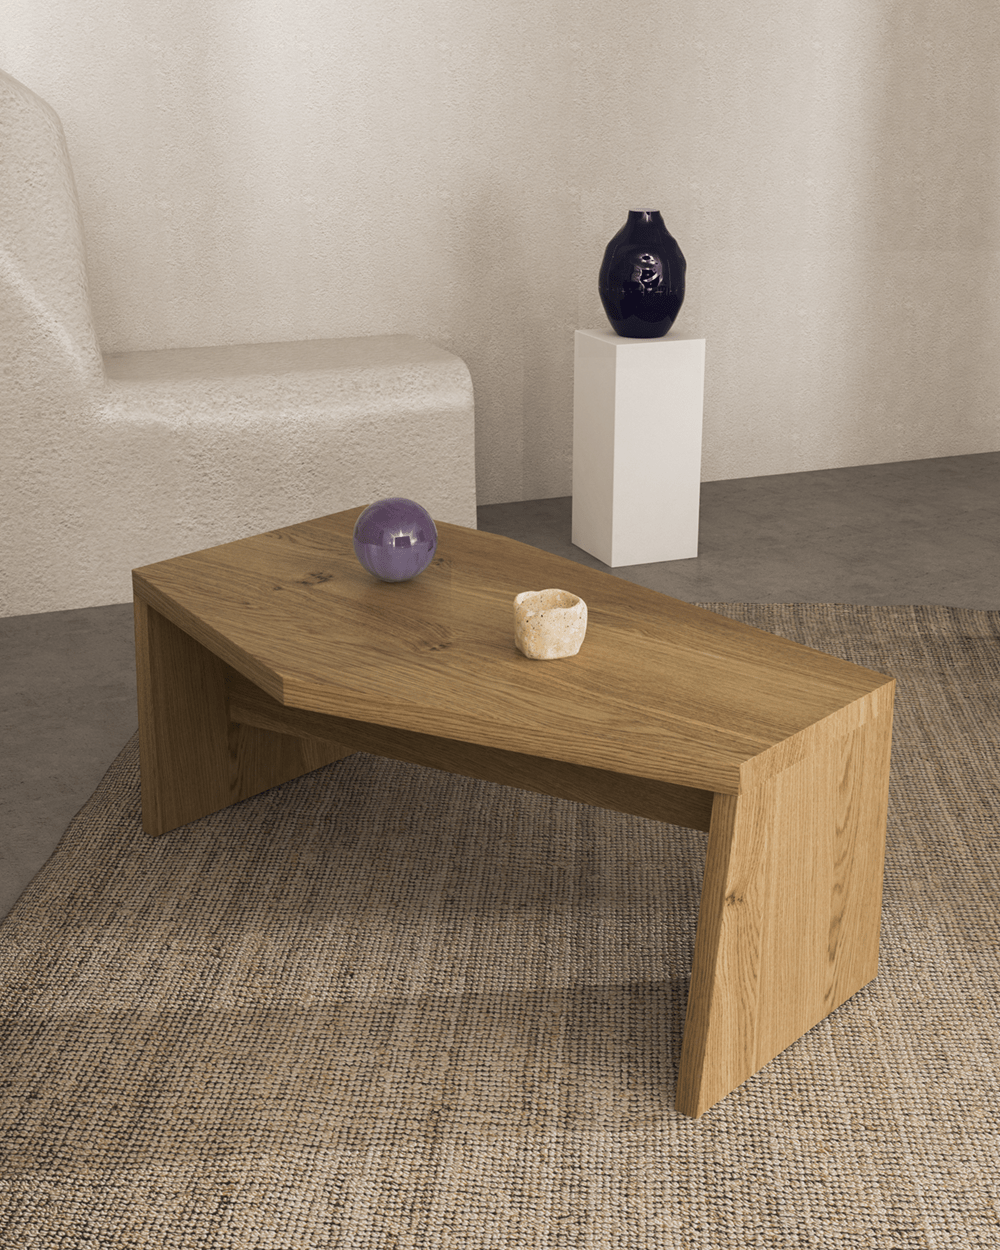 Nazara_Lazaro_Crooked_Coffee_Table_01